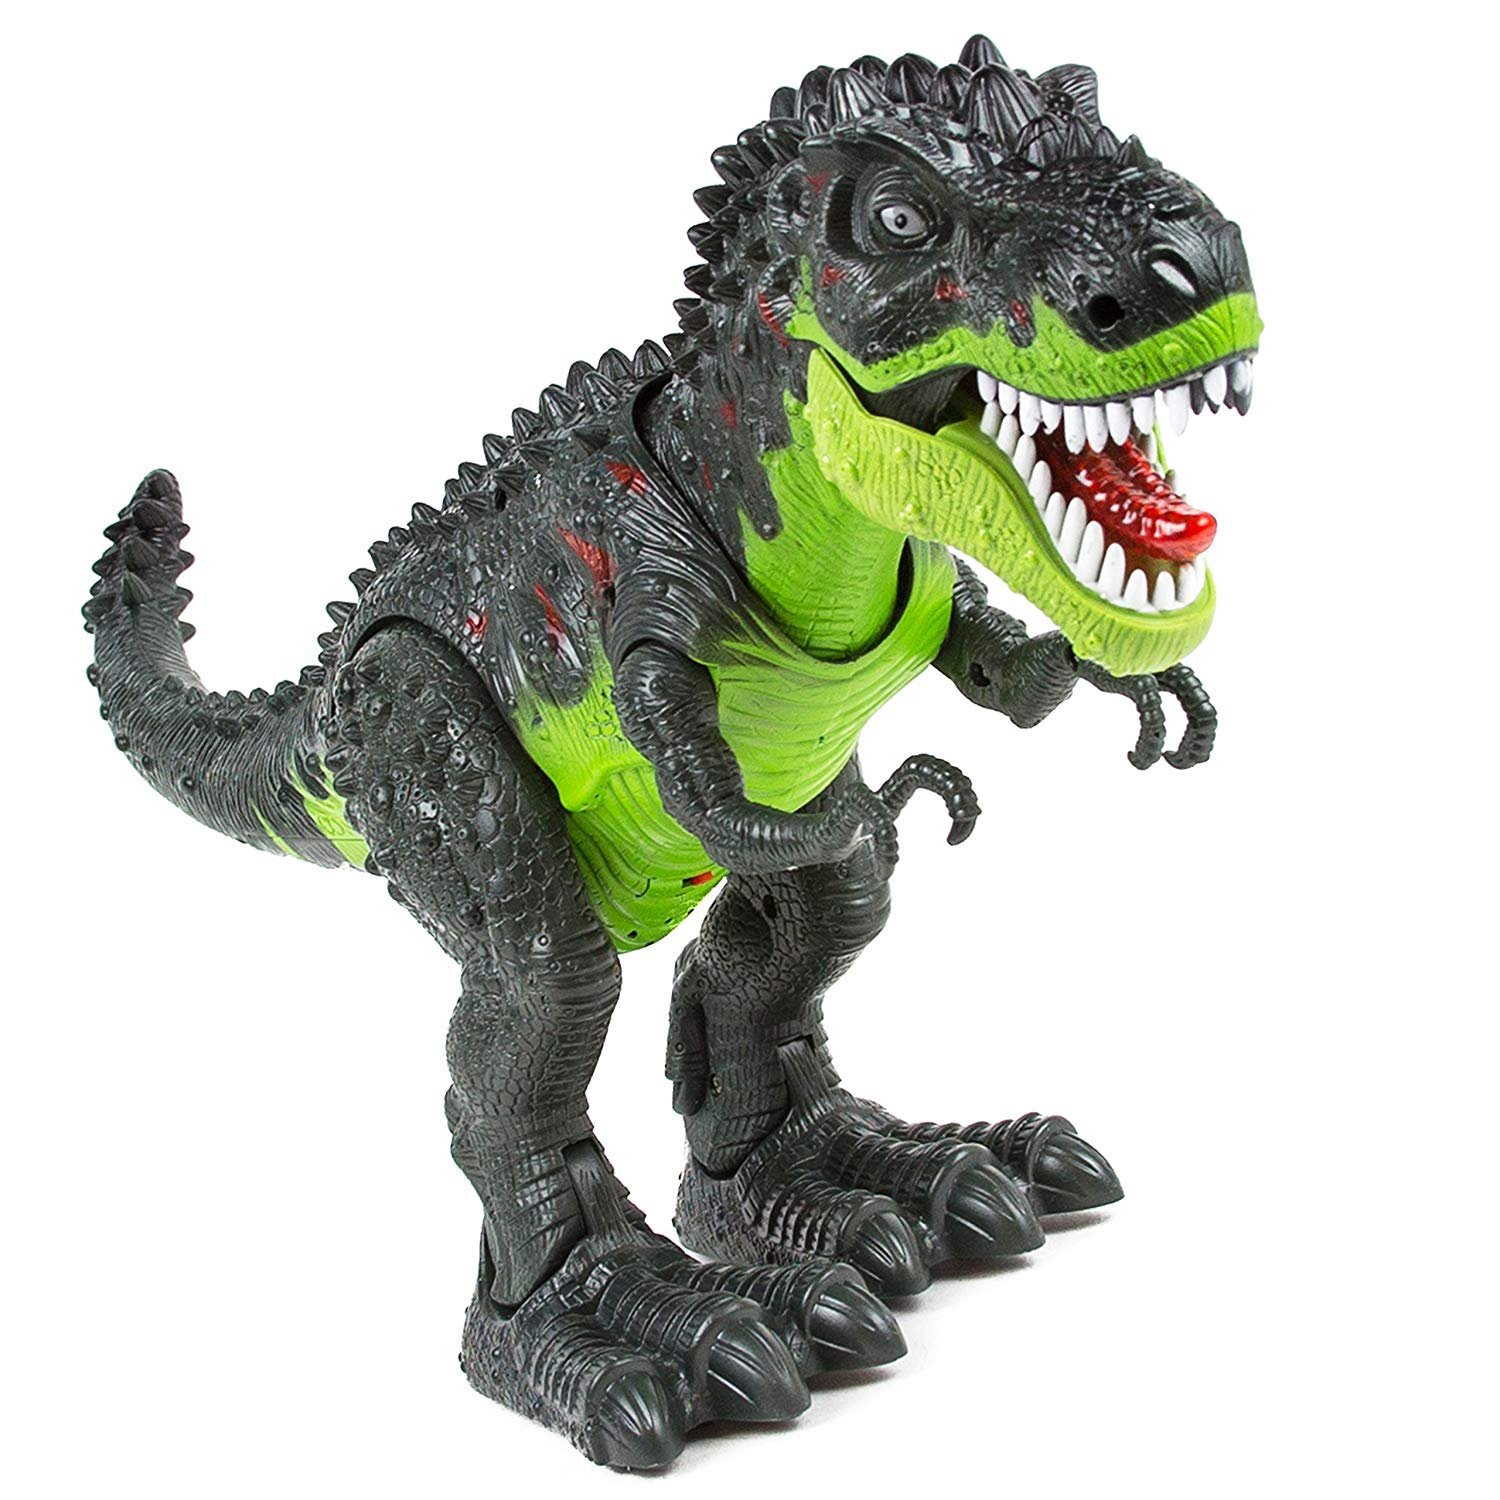 SY WonderPlay Tyrannosaurus T-Rex Dinosaur with Lights and Realistic Sounds Action Figure Toy - Light Up Eyes, Awesome Sounds - Walks on Its Own! - Great Gift Boys 3+,Battery Operate (Green)